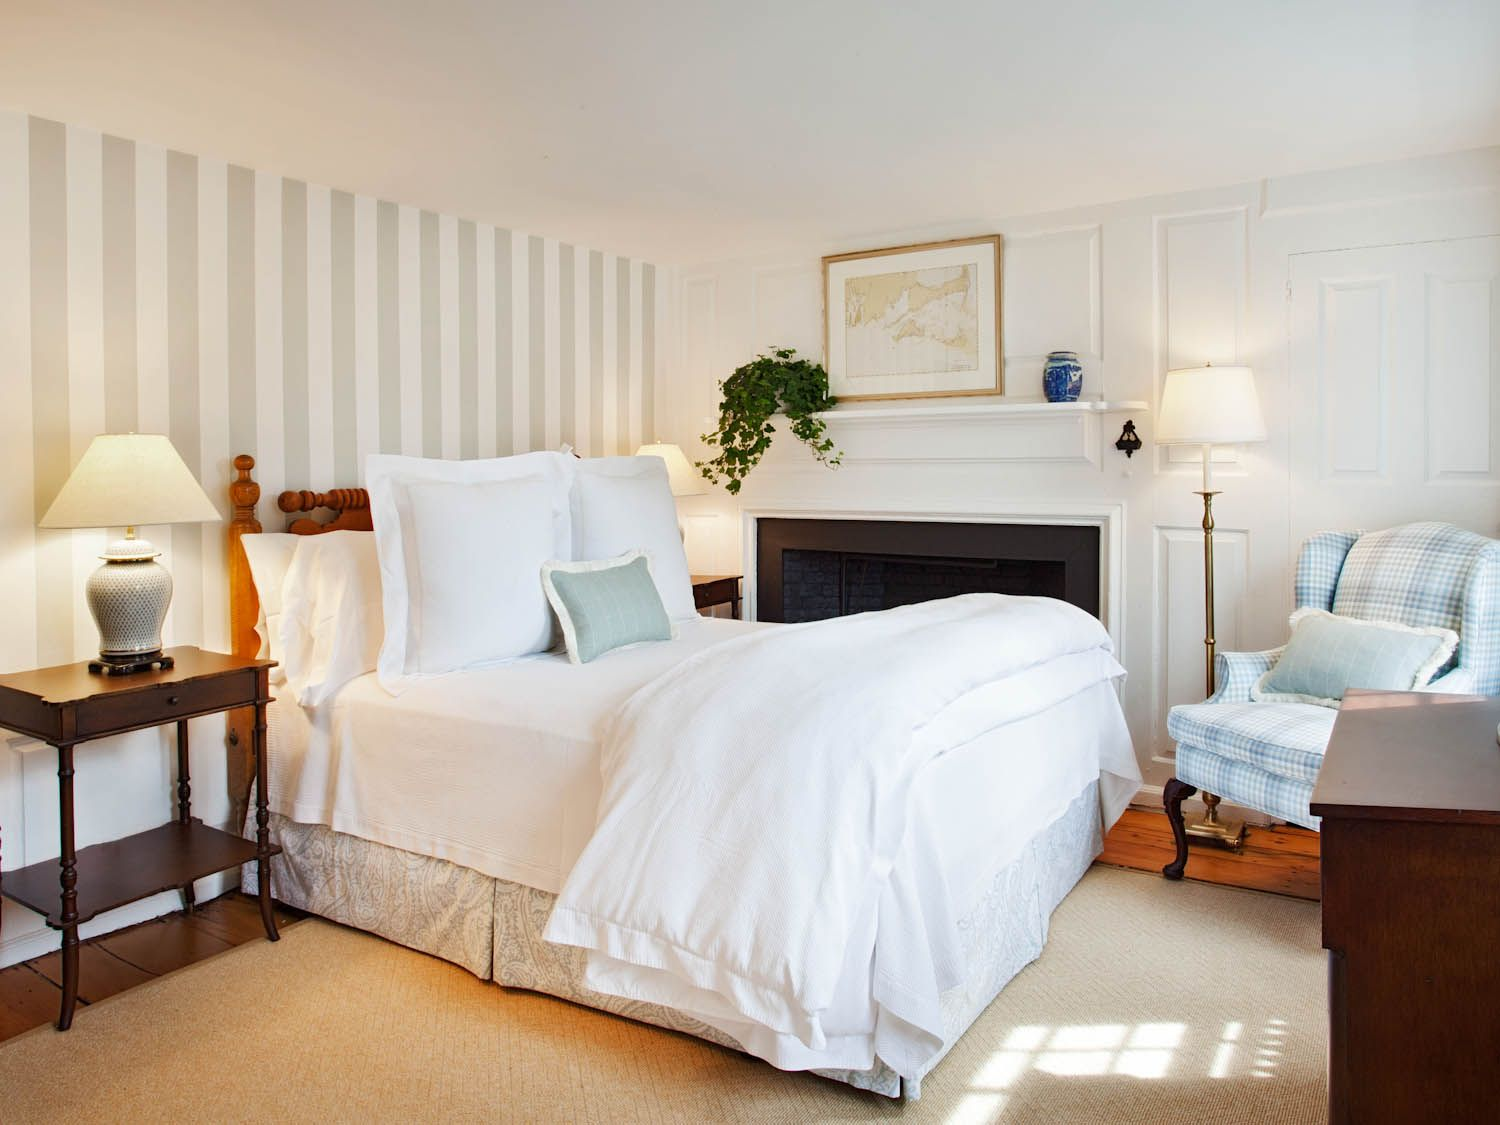 No 4 queen room in nantucket hotel luxurious inn in for Top rated boutique hotels